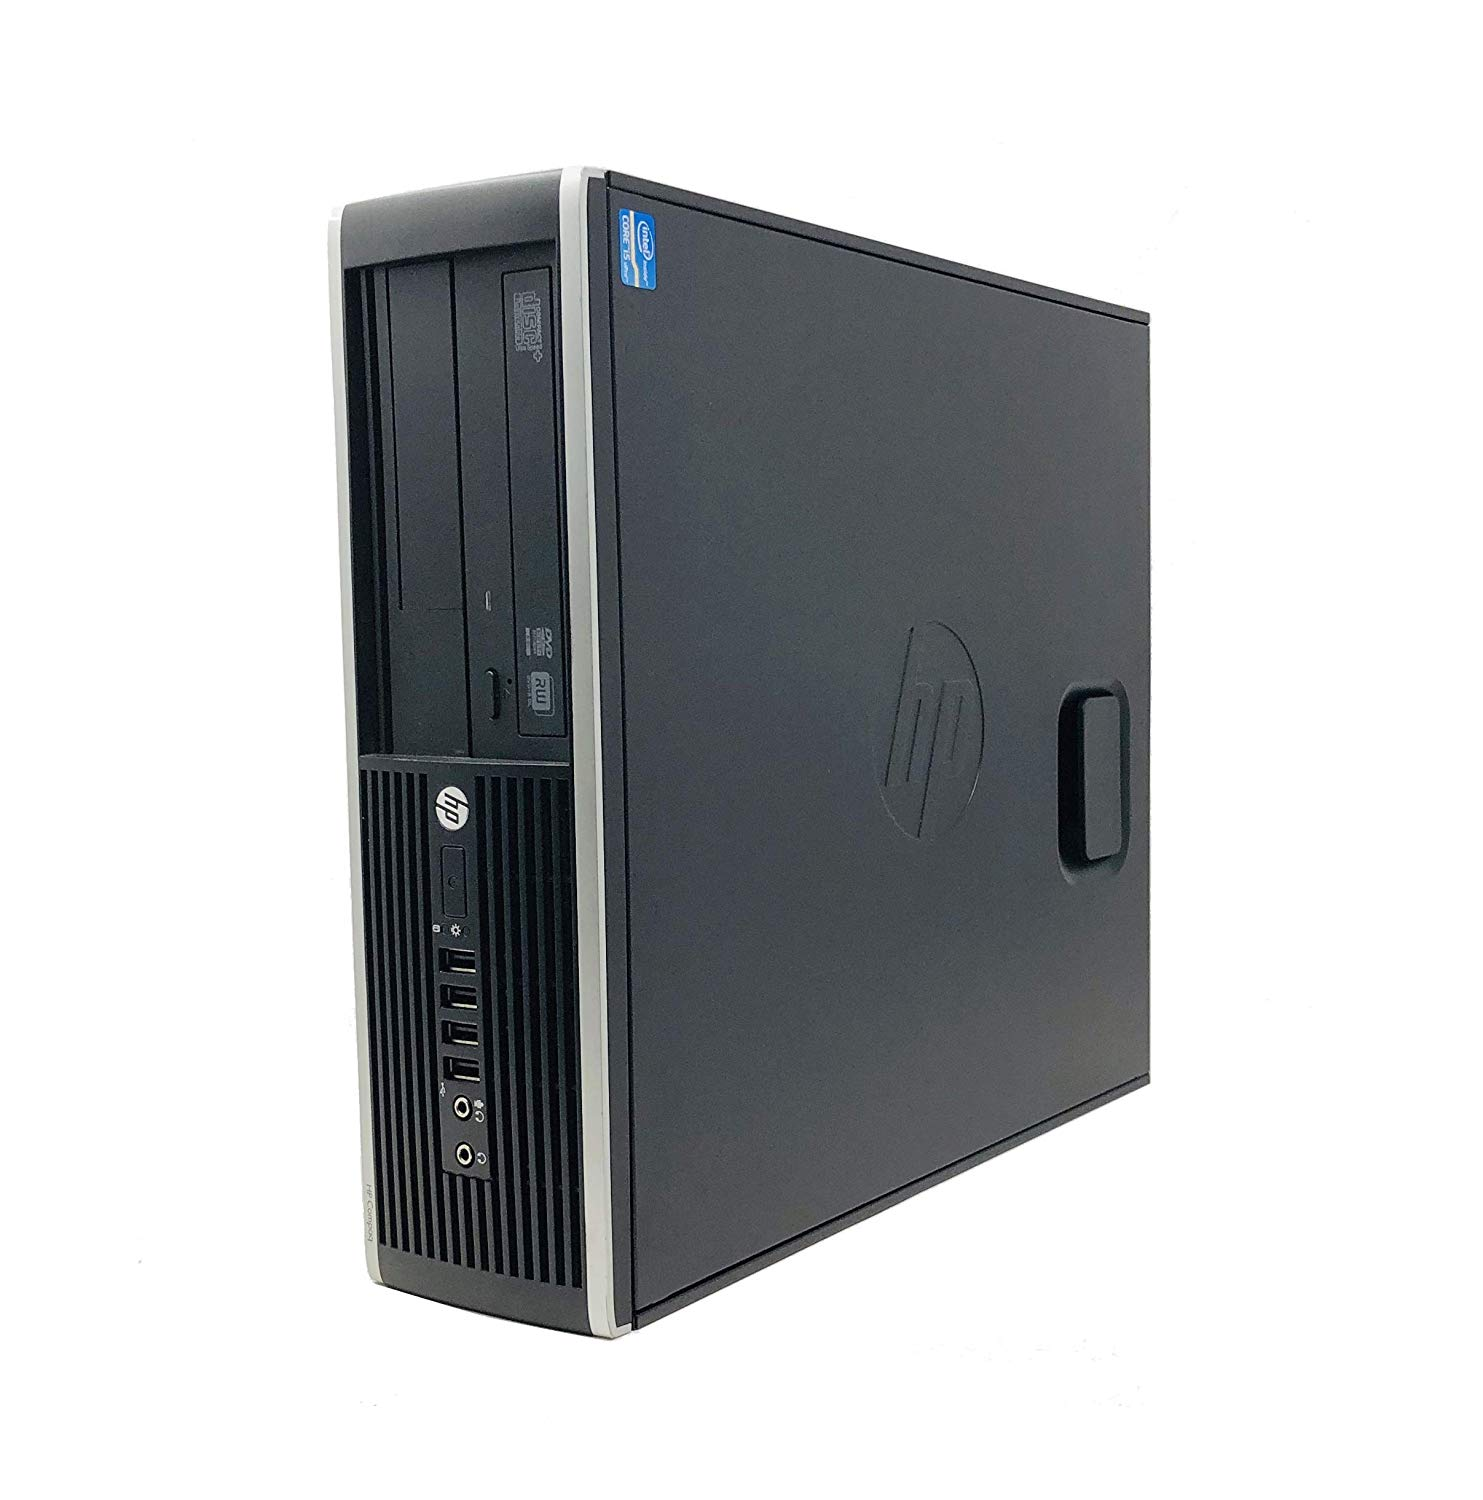 Hp Elite 8200 - Ordenador de sobremesa (<font><b>Intel</b></font> <font><b>i5</b></font>-<font><b>2400</b></font>, Sin lector 8GB de RAM, Disco SSD de 960GB , Windows 10 PRO ) - Negro (Reacondicionado) image